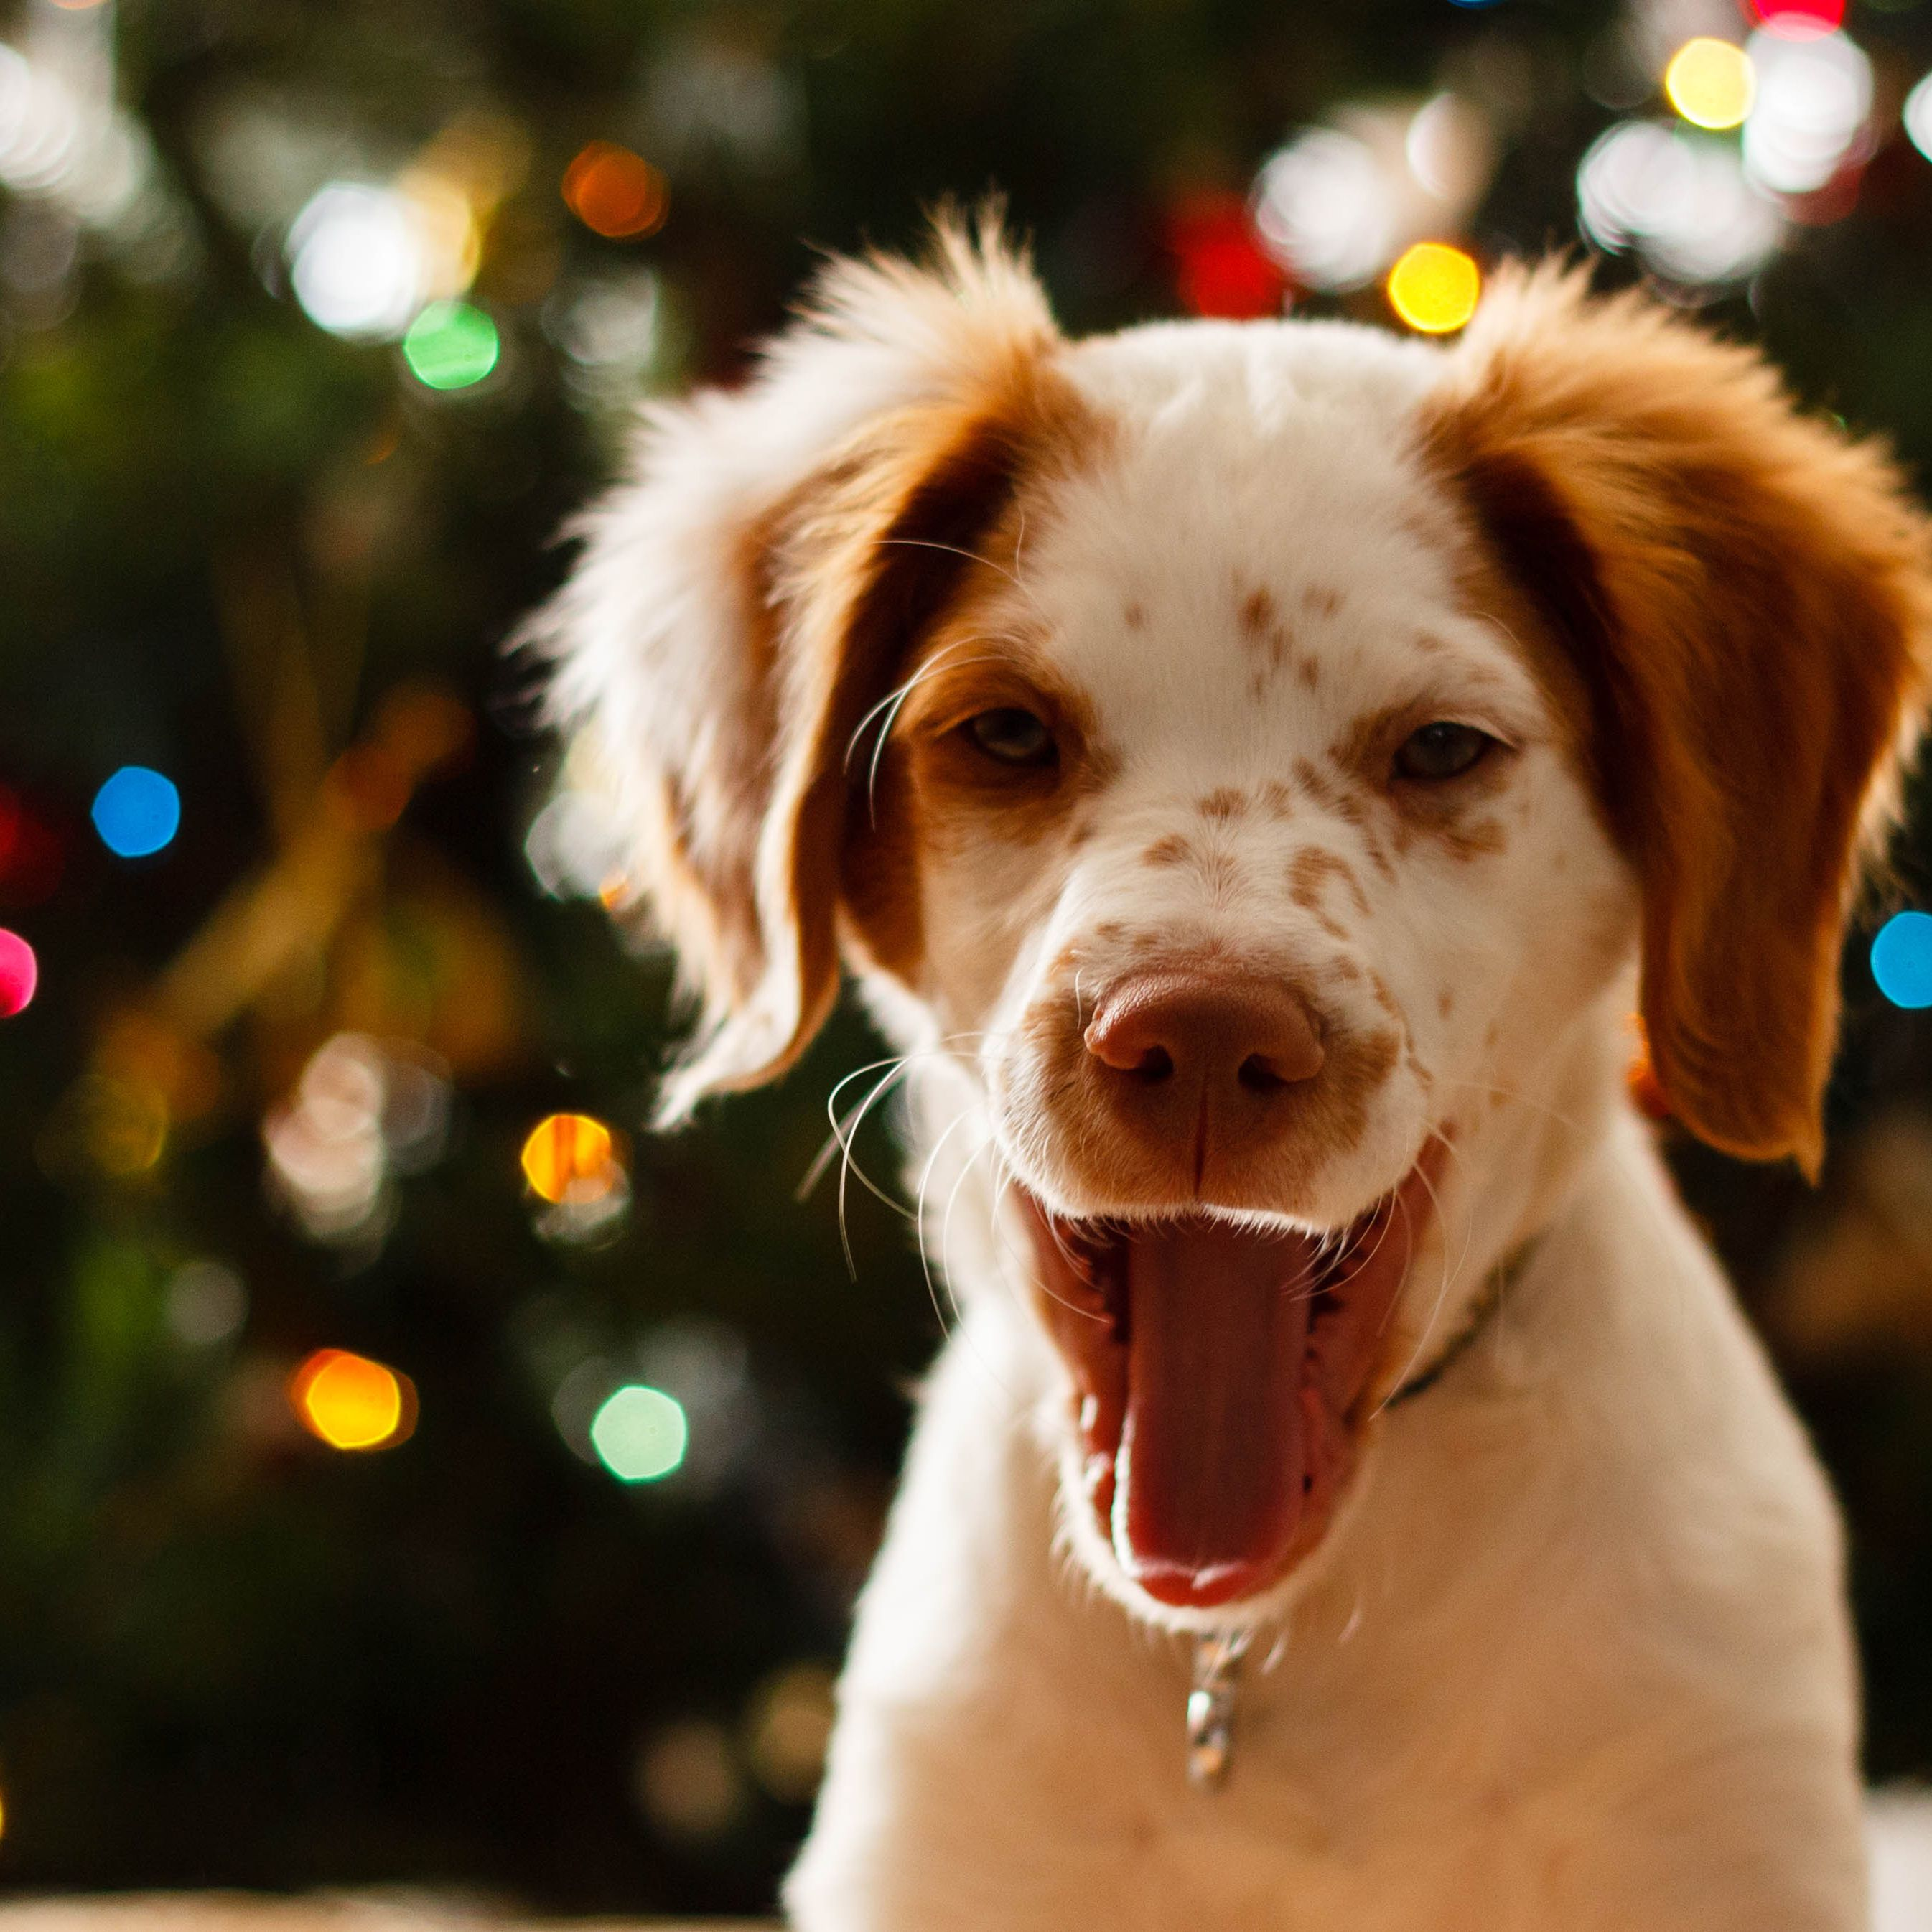 The 10 Best Christmas Gifts for Your Dog of 2019